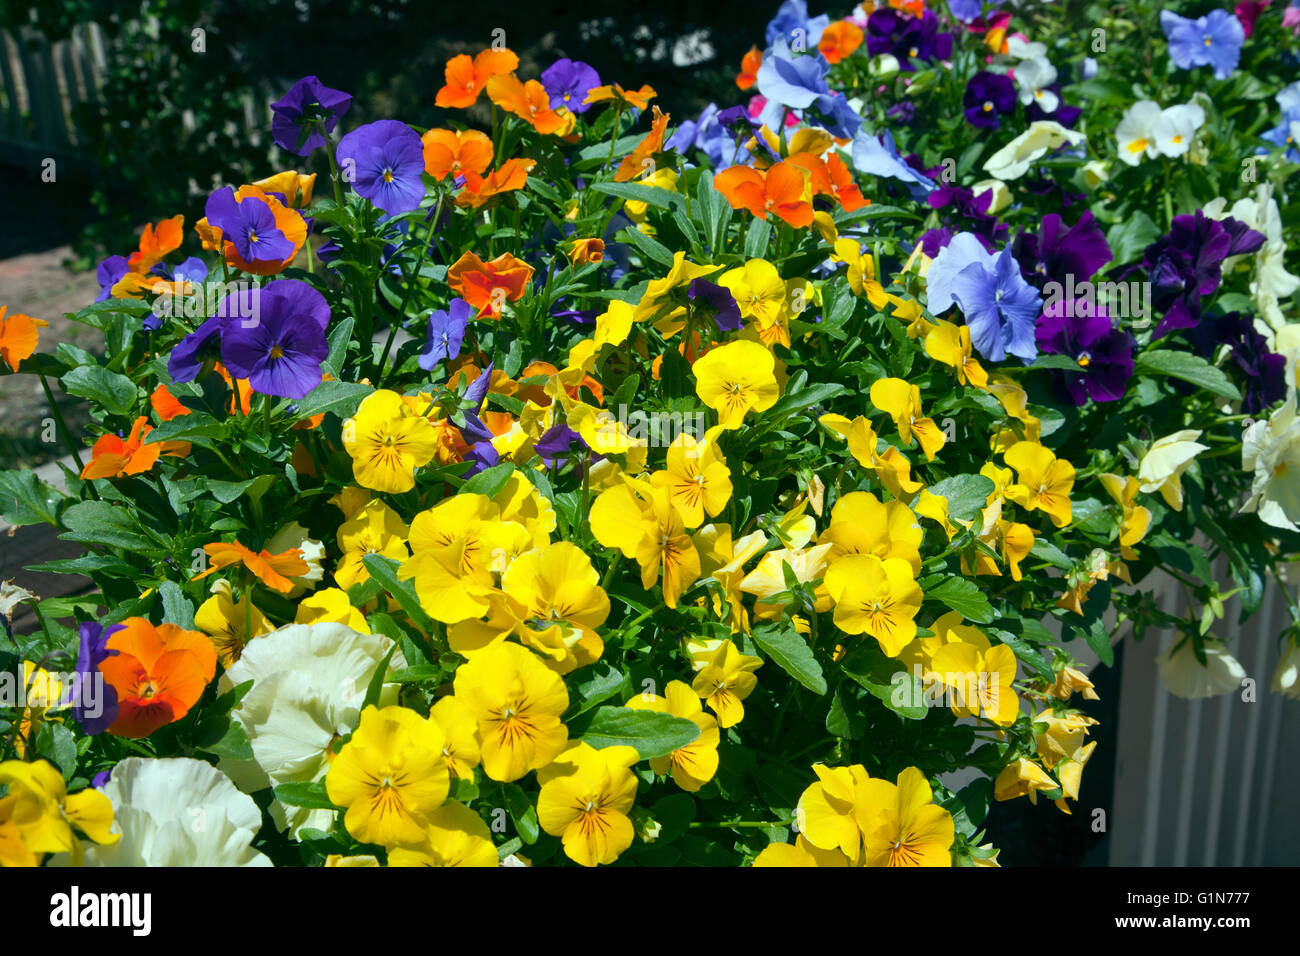 A colorful variety of pansies brighten the streets of Breckenridge, CO, in early July. - Stock Image